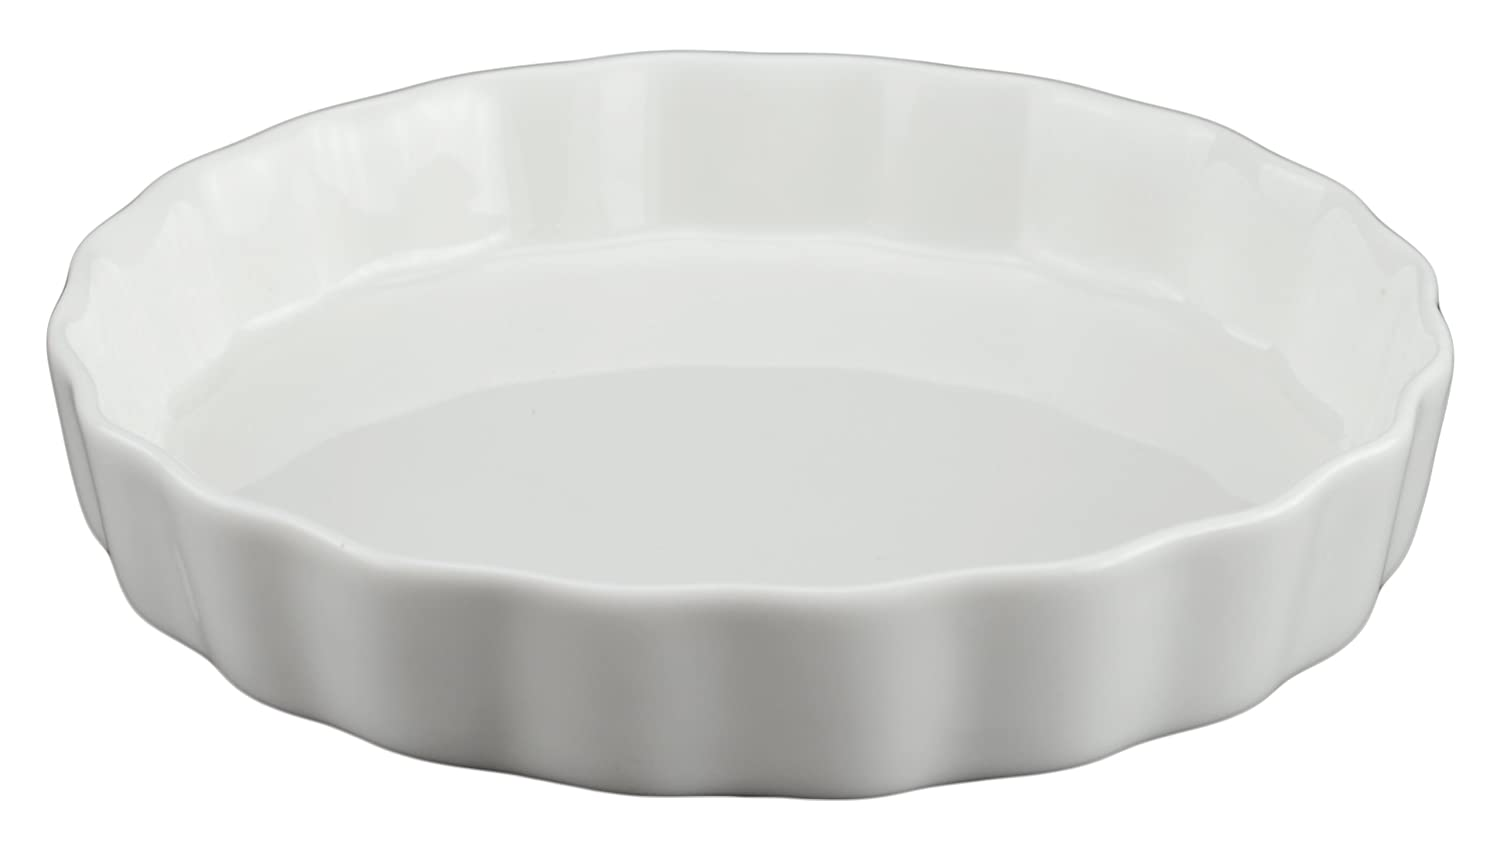 Tannex Set of 4 White Tie Quiche Dish, White 94112